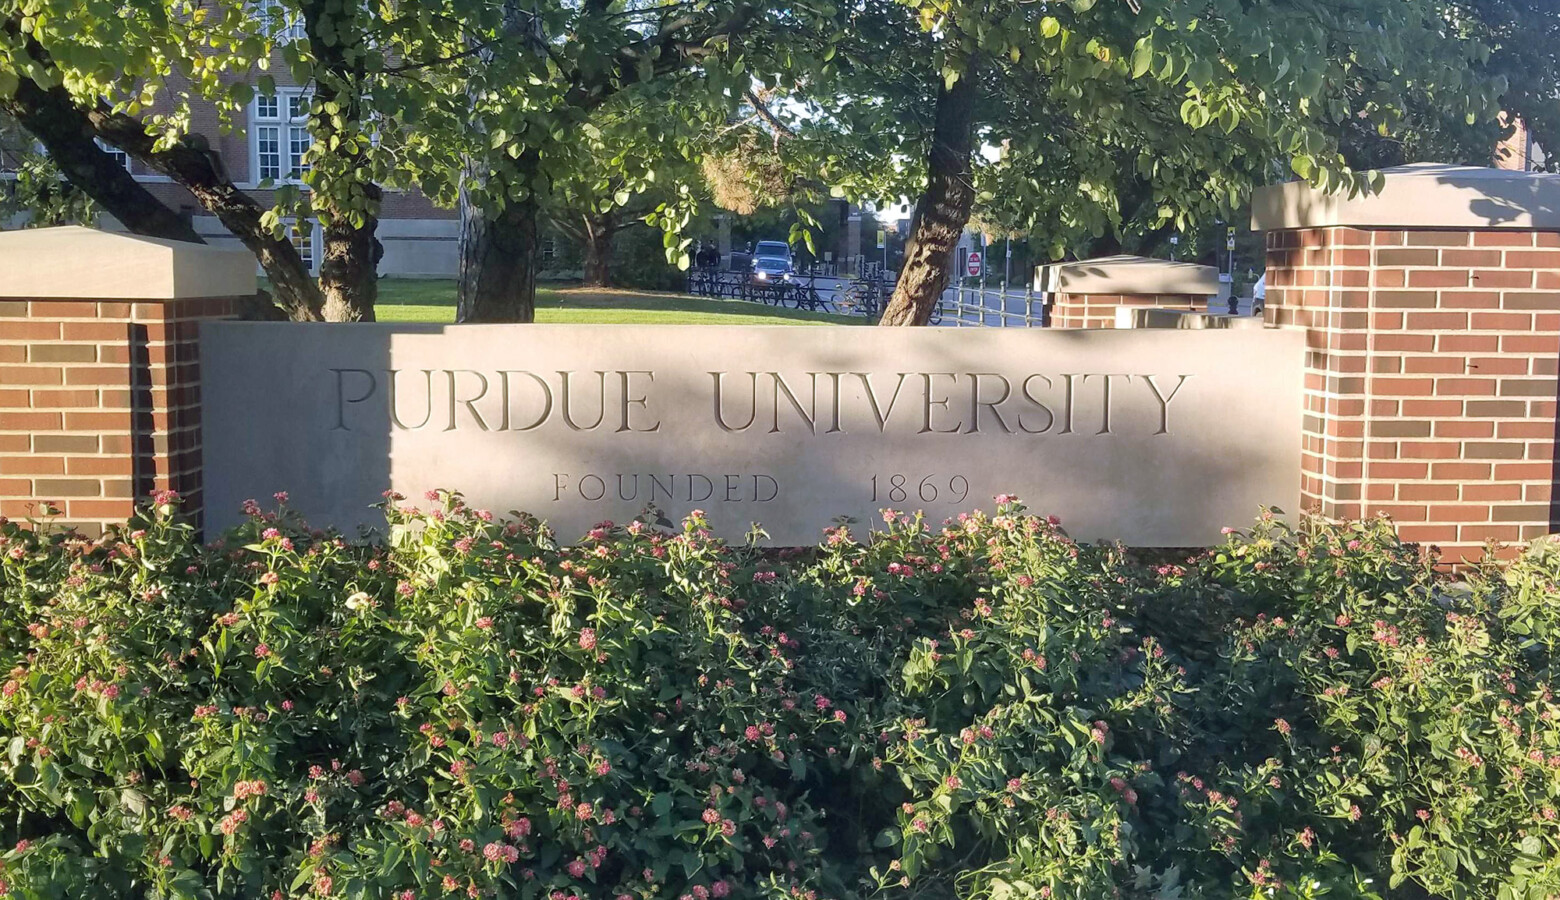 Purdue University is located in West Lafayette and is among the public universities with the highest graduation rates in Indiana. (Samantha Horton/IPB News)